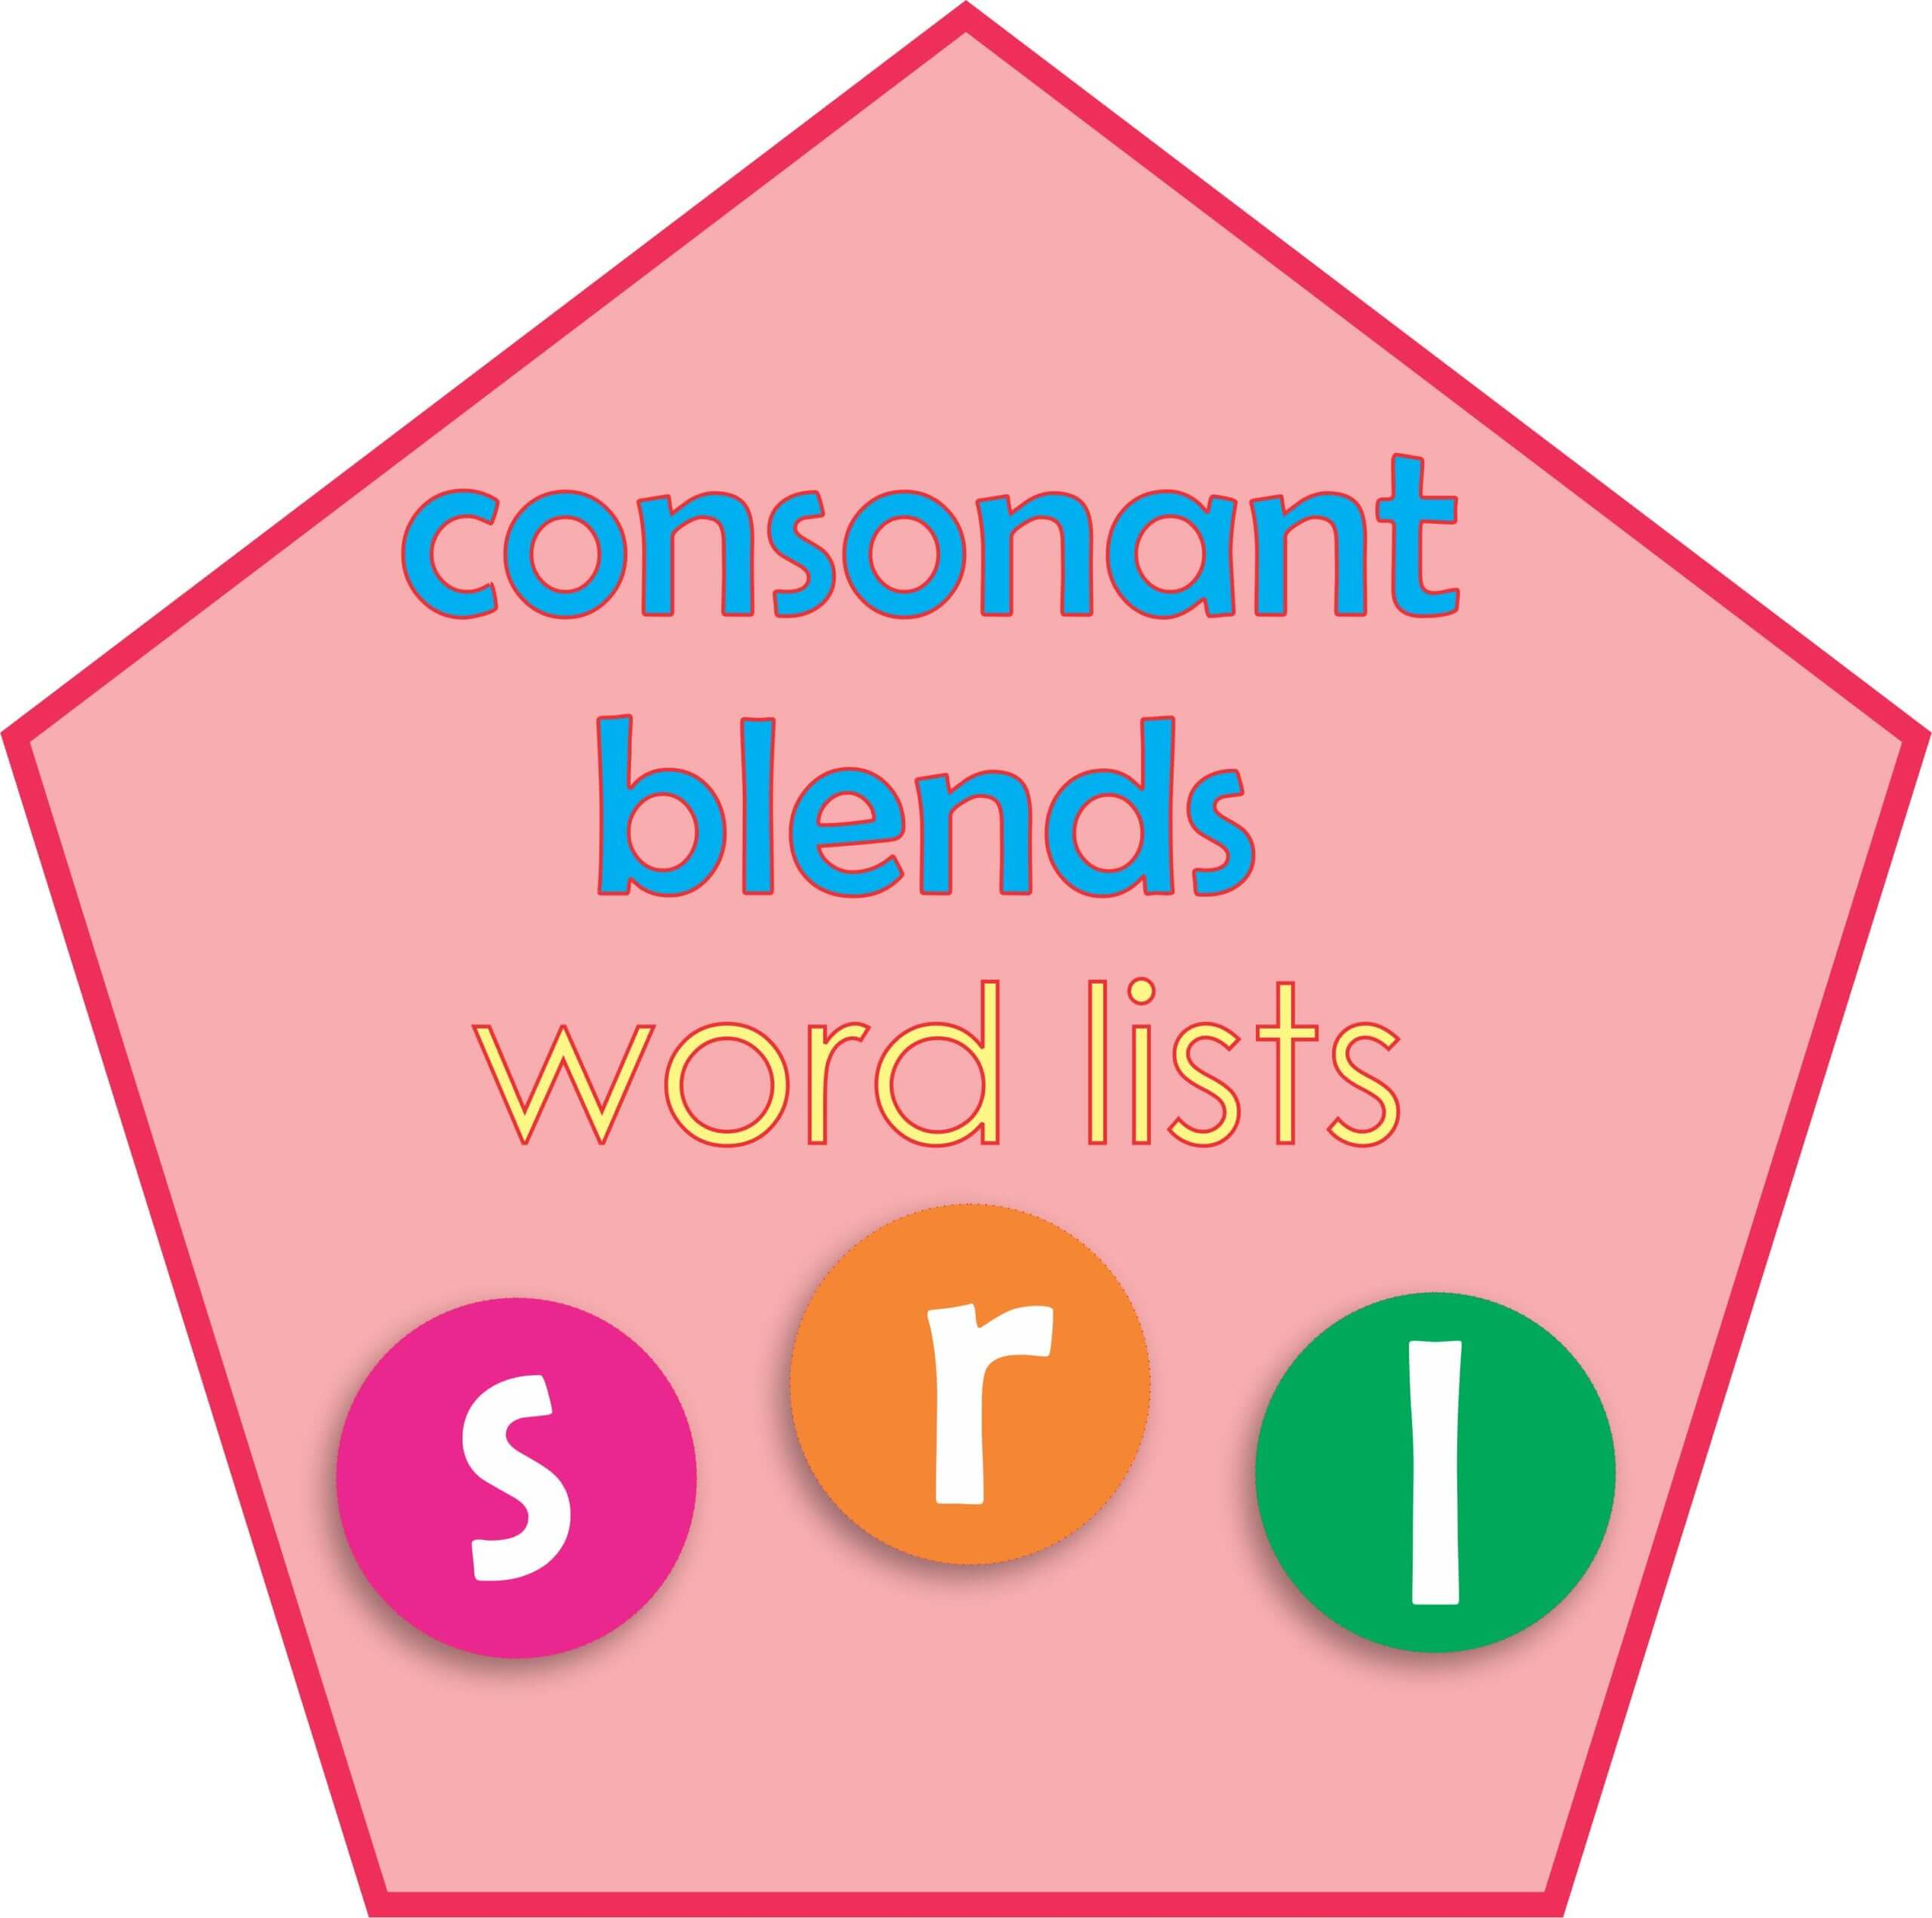 Consonant blends word lists